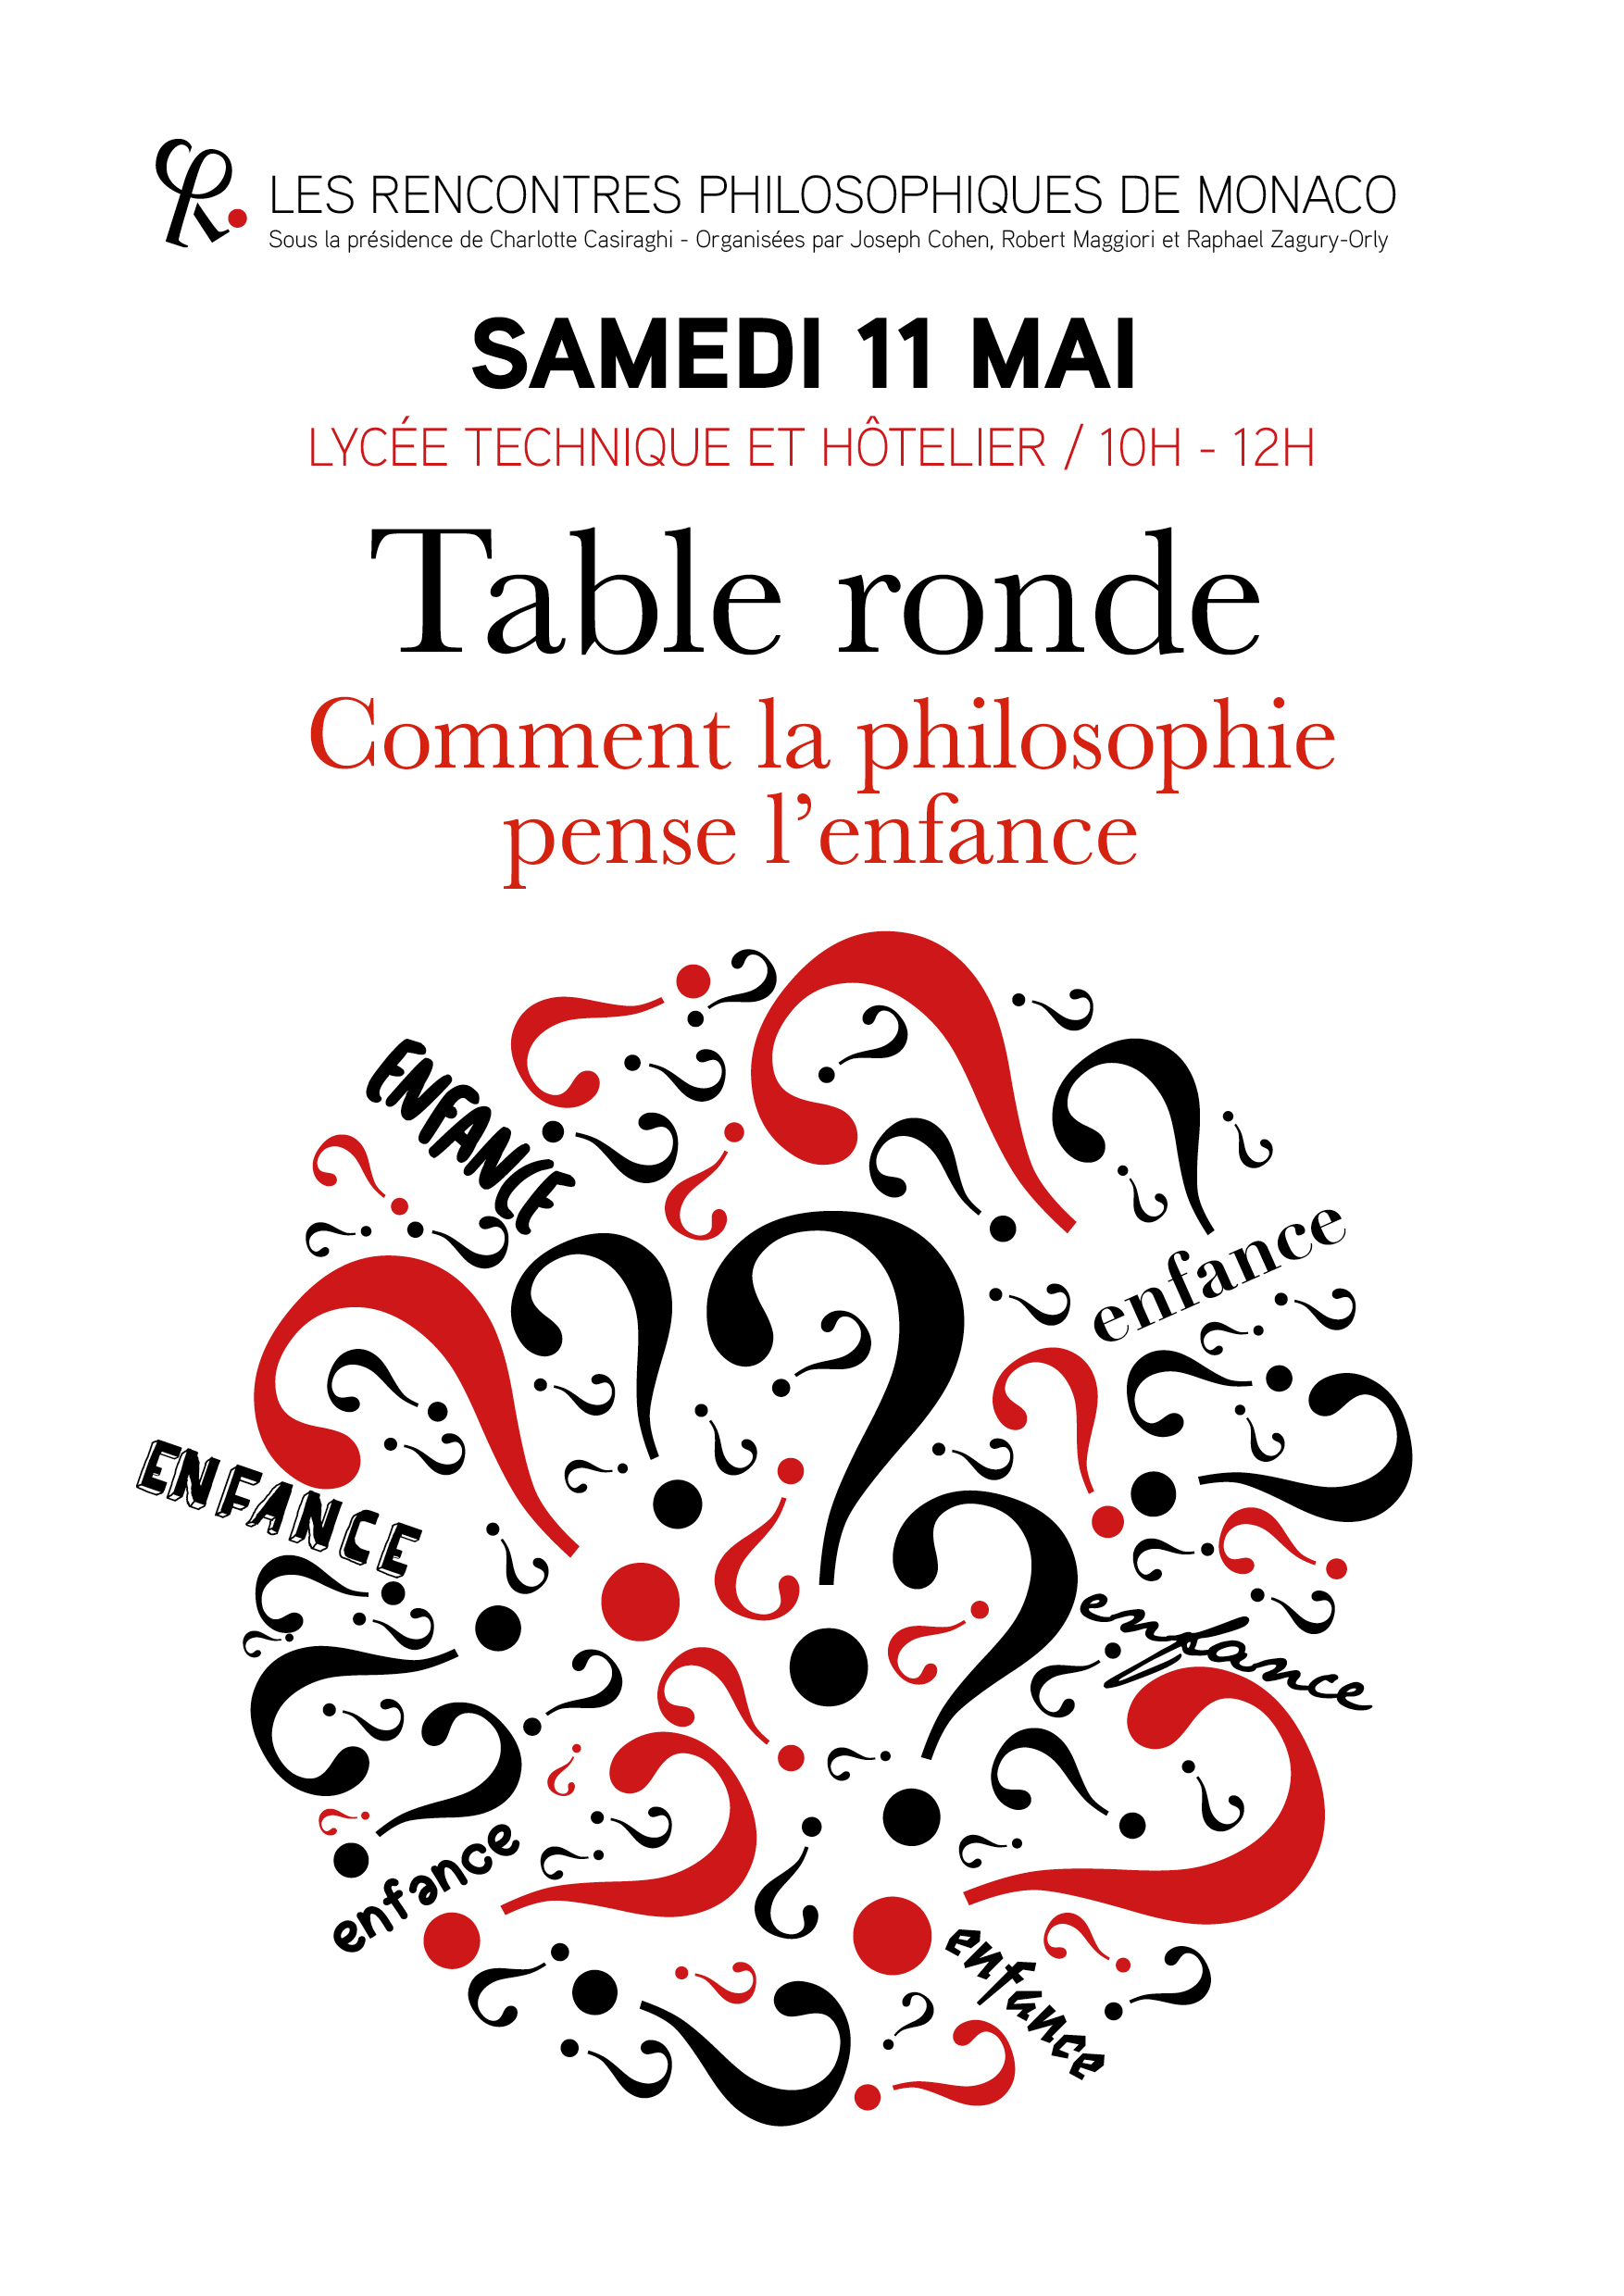 5429, 5429, flyer Table 1, flyer-table-1.jpg, 991259, https://philomonaco.com/wp-content/uploads/2019/04/flyer-table-1.jpg, https://philomonaco.com/atelier/exposition-lhumain/flyer-table-1/, , 2, , , flyer-table-1, inherit, 5423, 2019-04-01 14:14:19, 2019-04-01 14:14:19, 0, image/jpeg, image, jpeg, https://philomonaco.com/wp-includes/images/media/default.png, 1754, 2480, Array